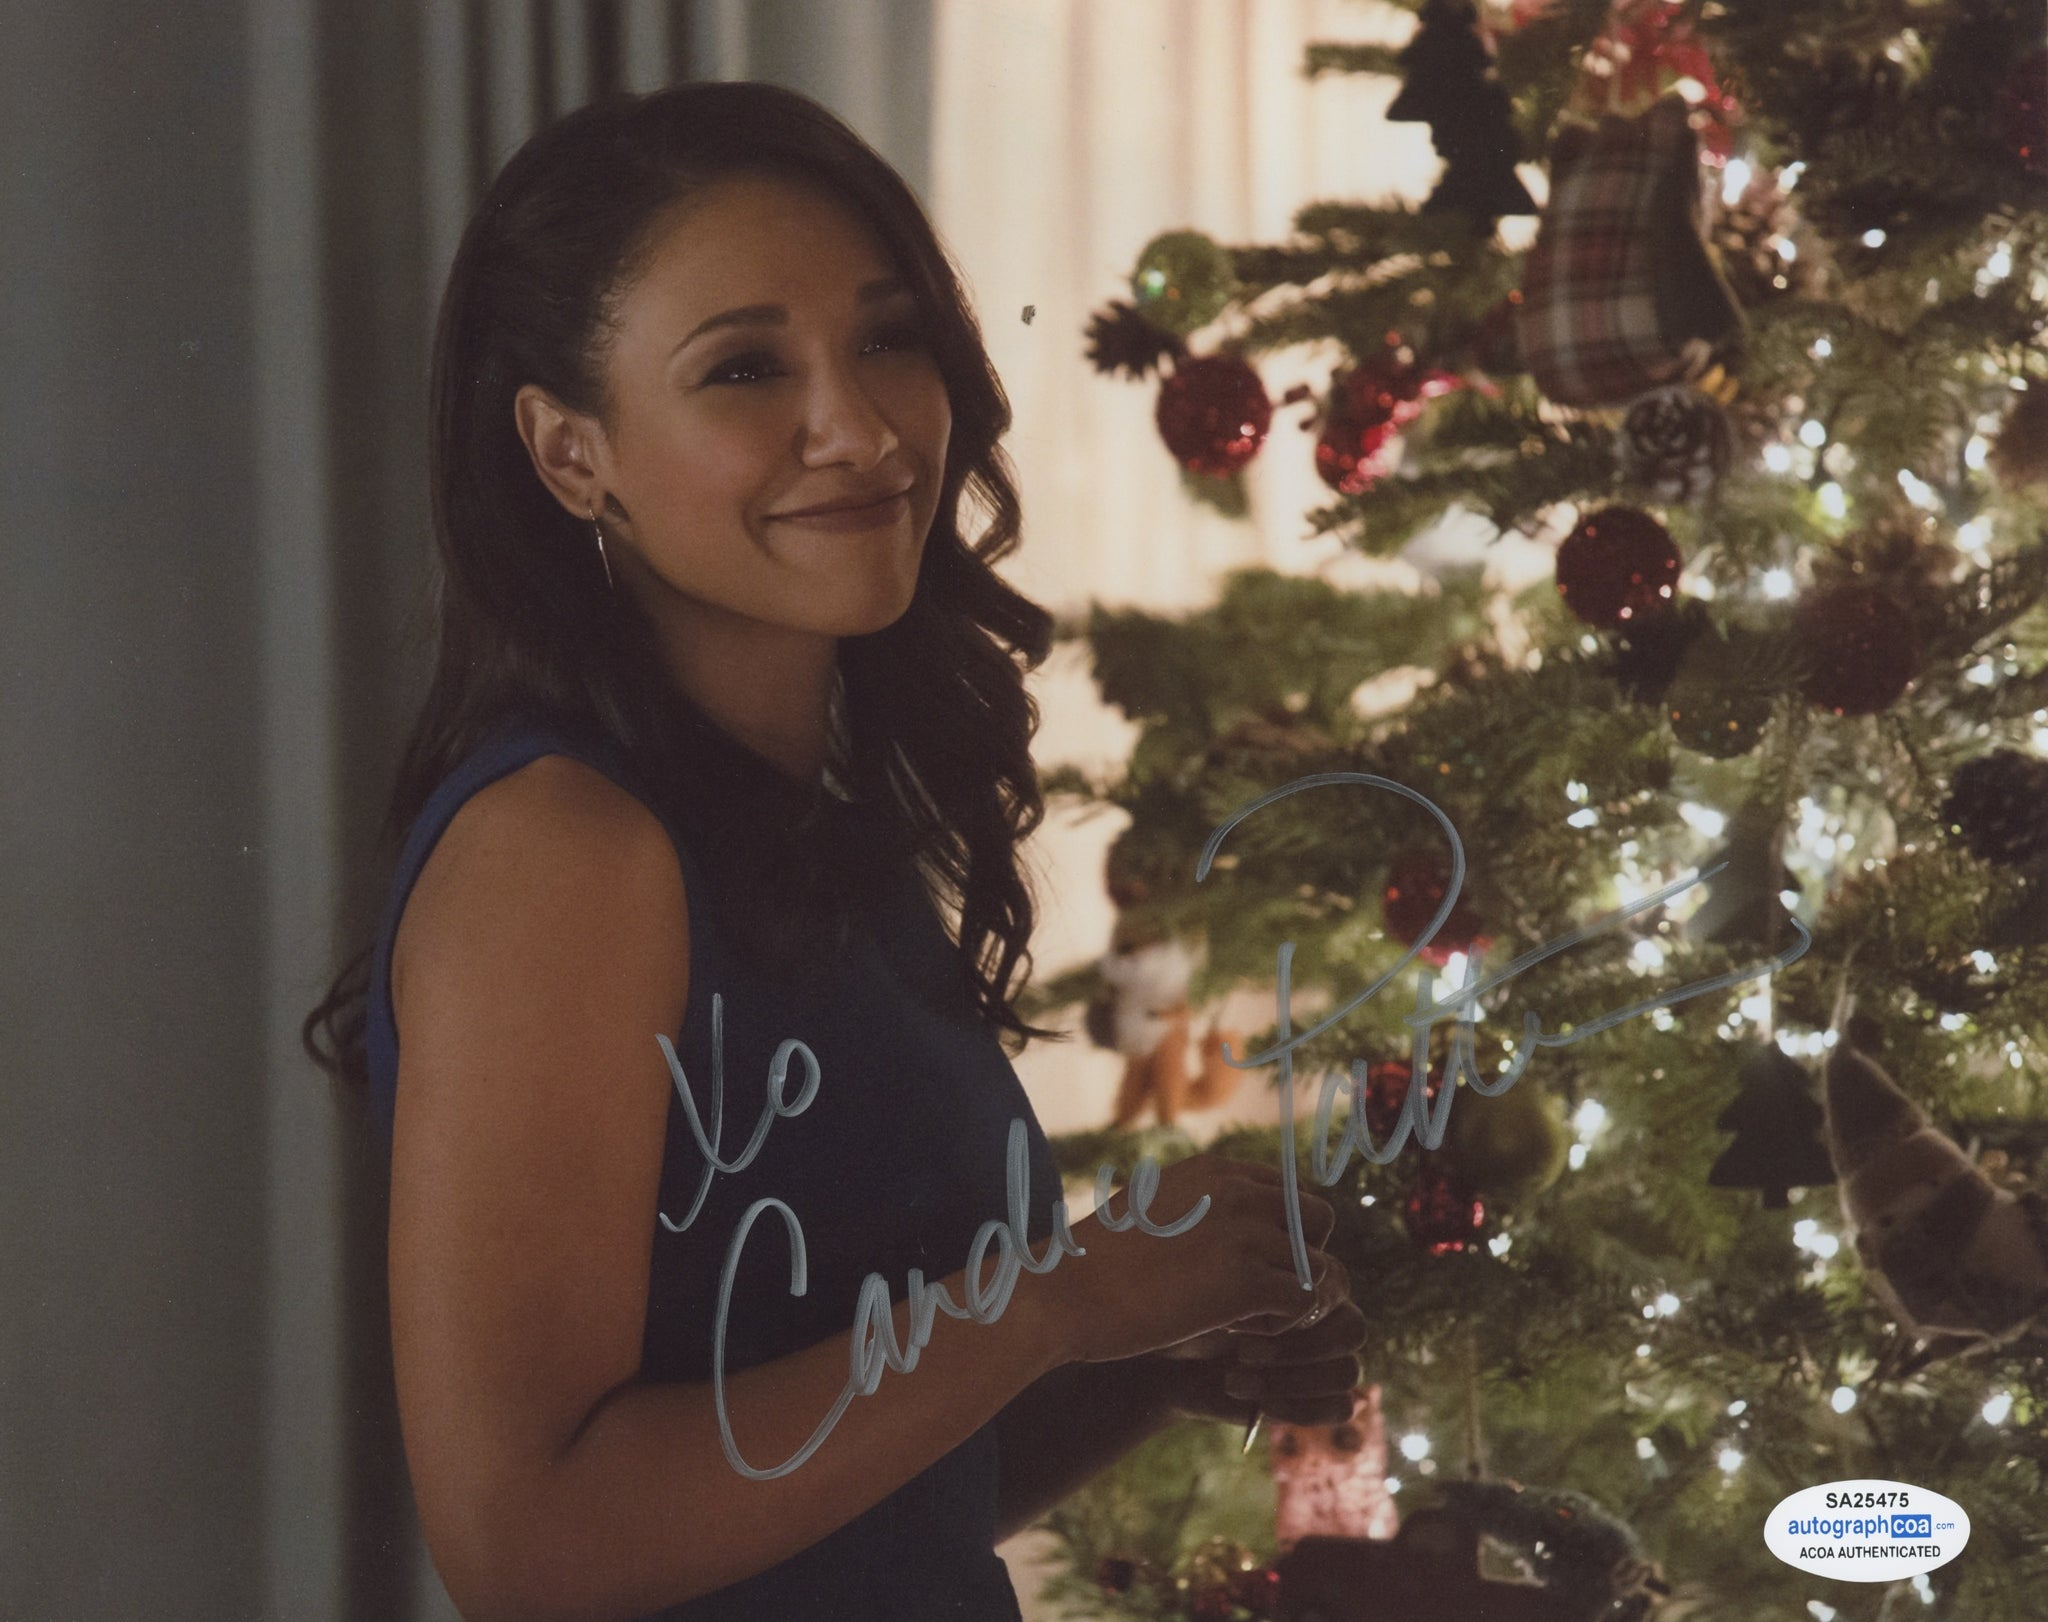 Candice Patton The Flash Sexy Signed Autograph 8x10 Photo ACOA Arrow #4 - Outlaw Hobbies Authentic Autographs